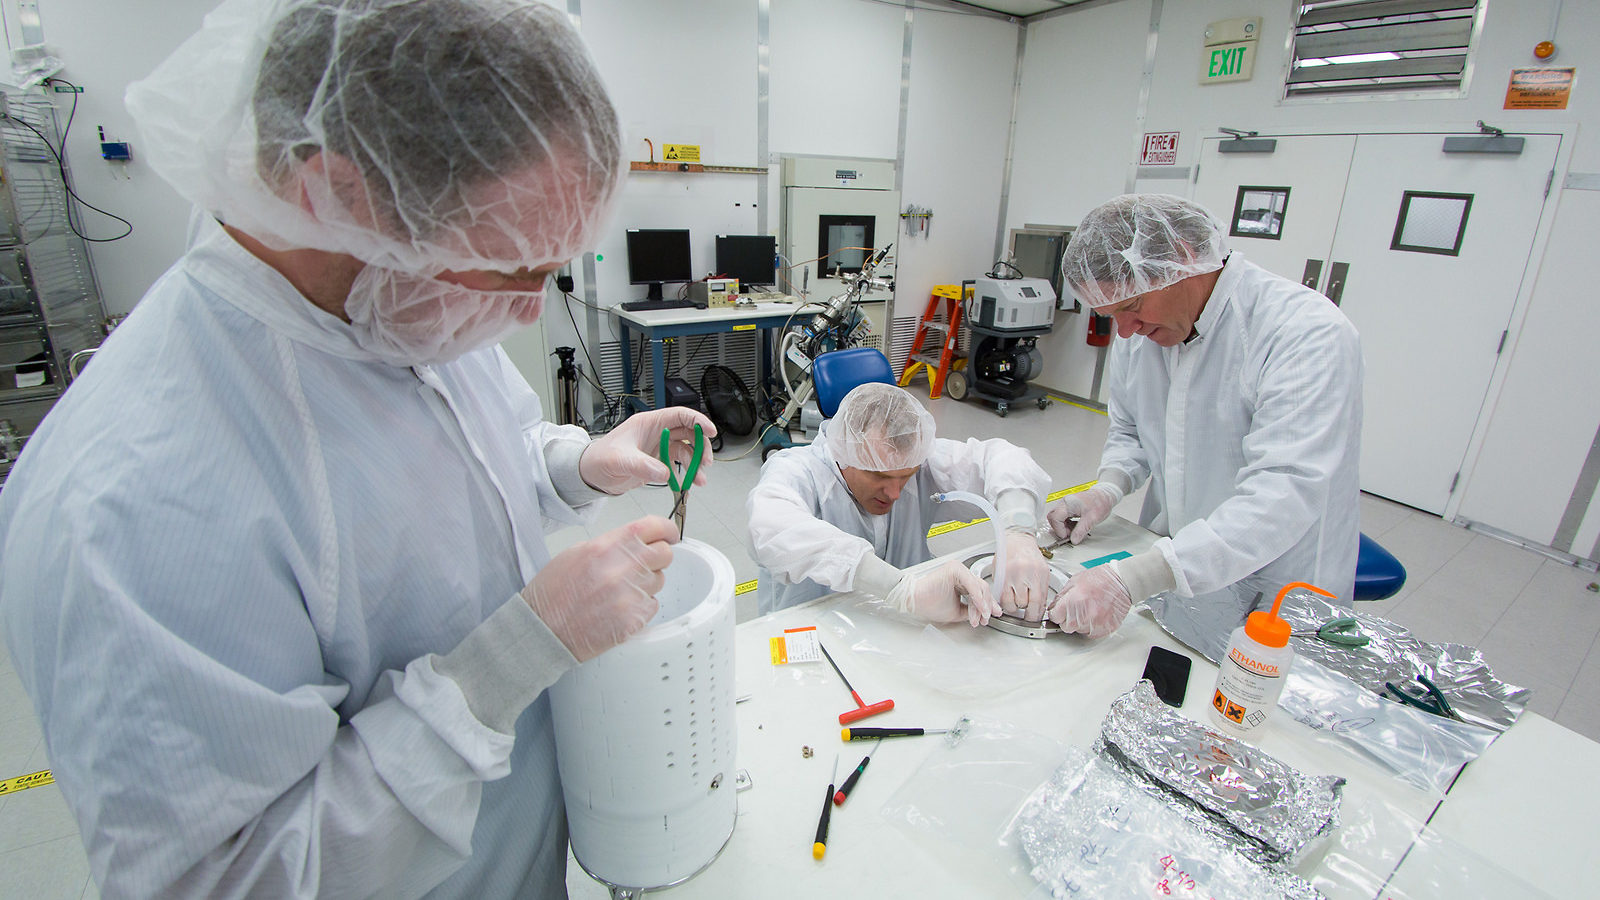 Scientists in a cleanroom assemble the prototype for the LZ detector's core.